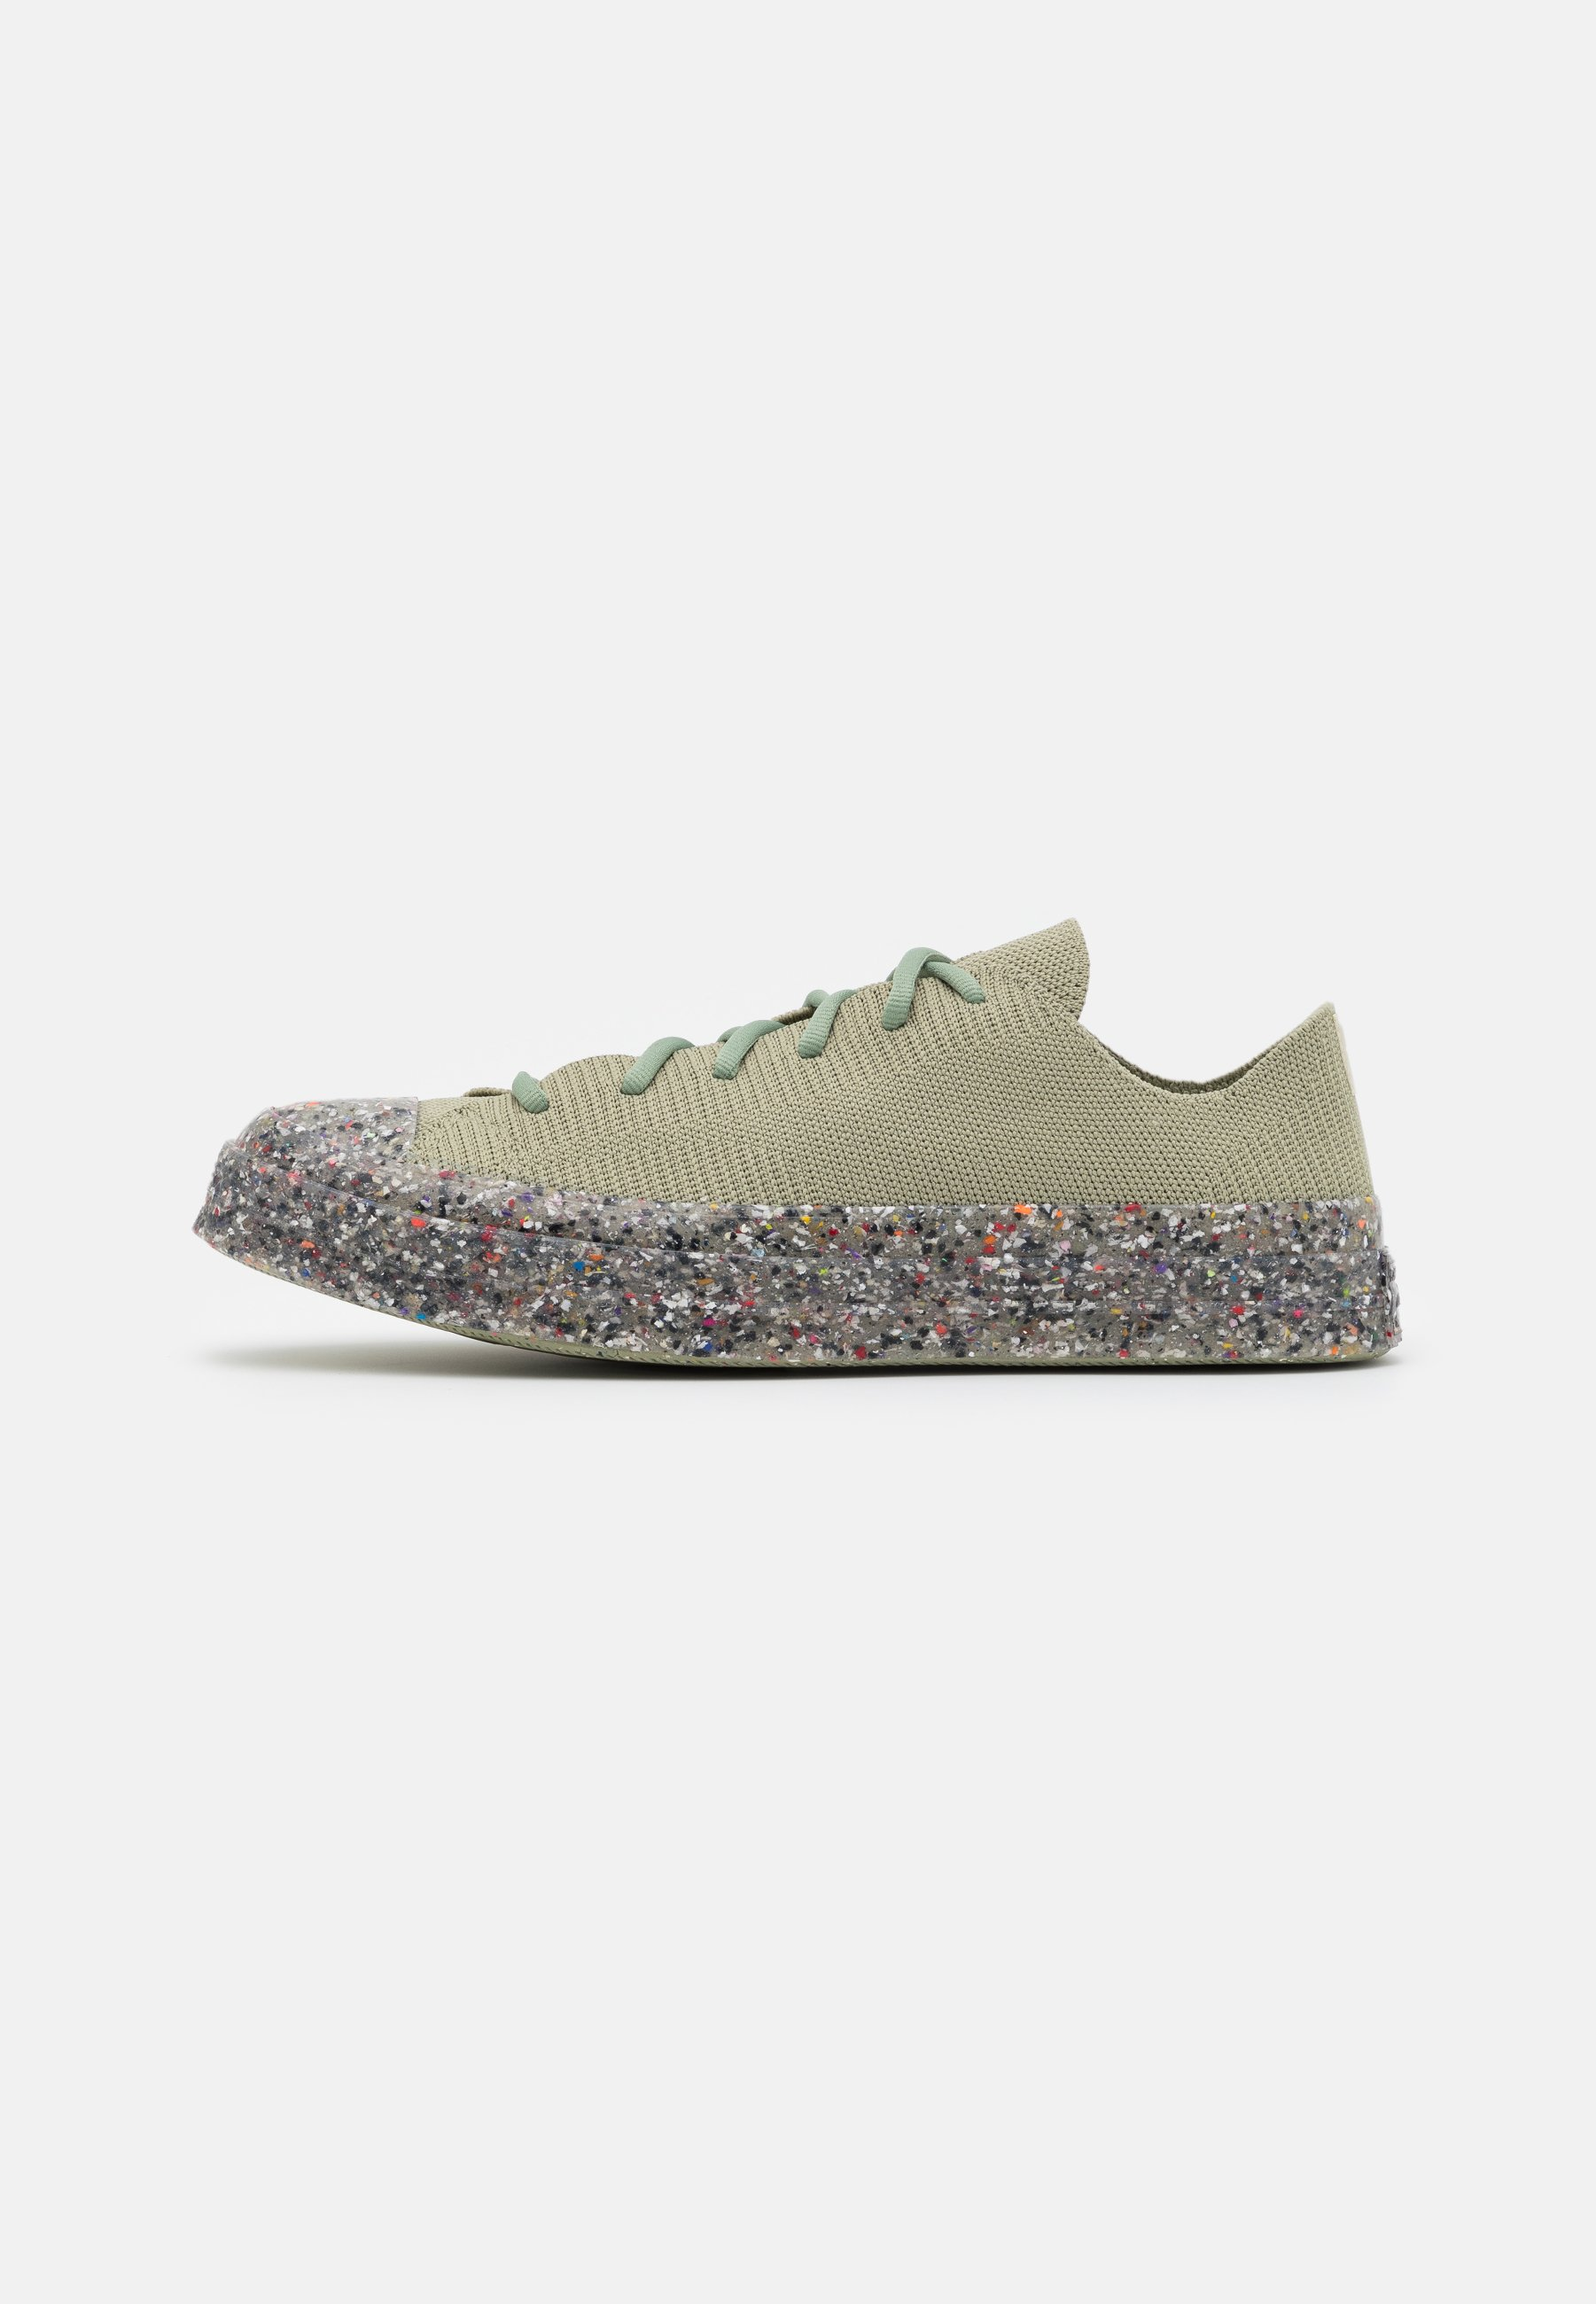 Homme RENEW CHUCK 70 RECYCLED KNIT UNISEX - Baskets basses